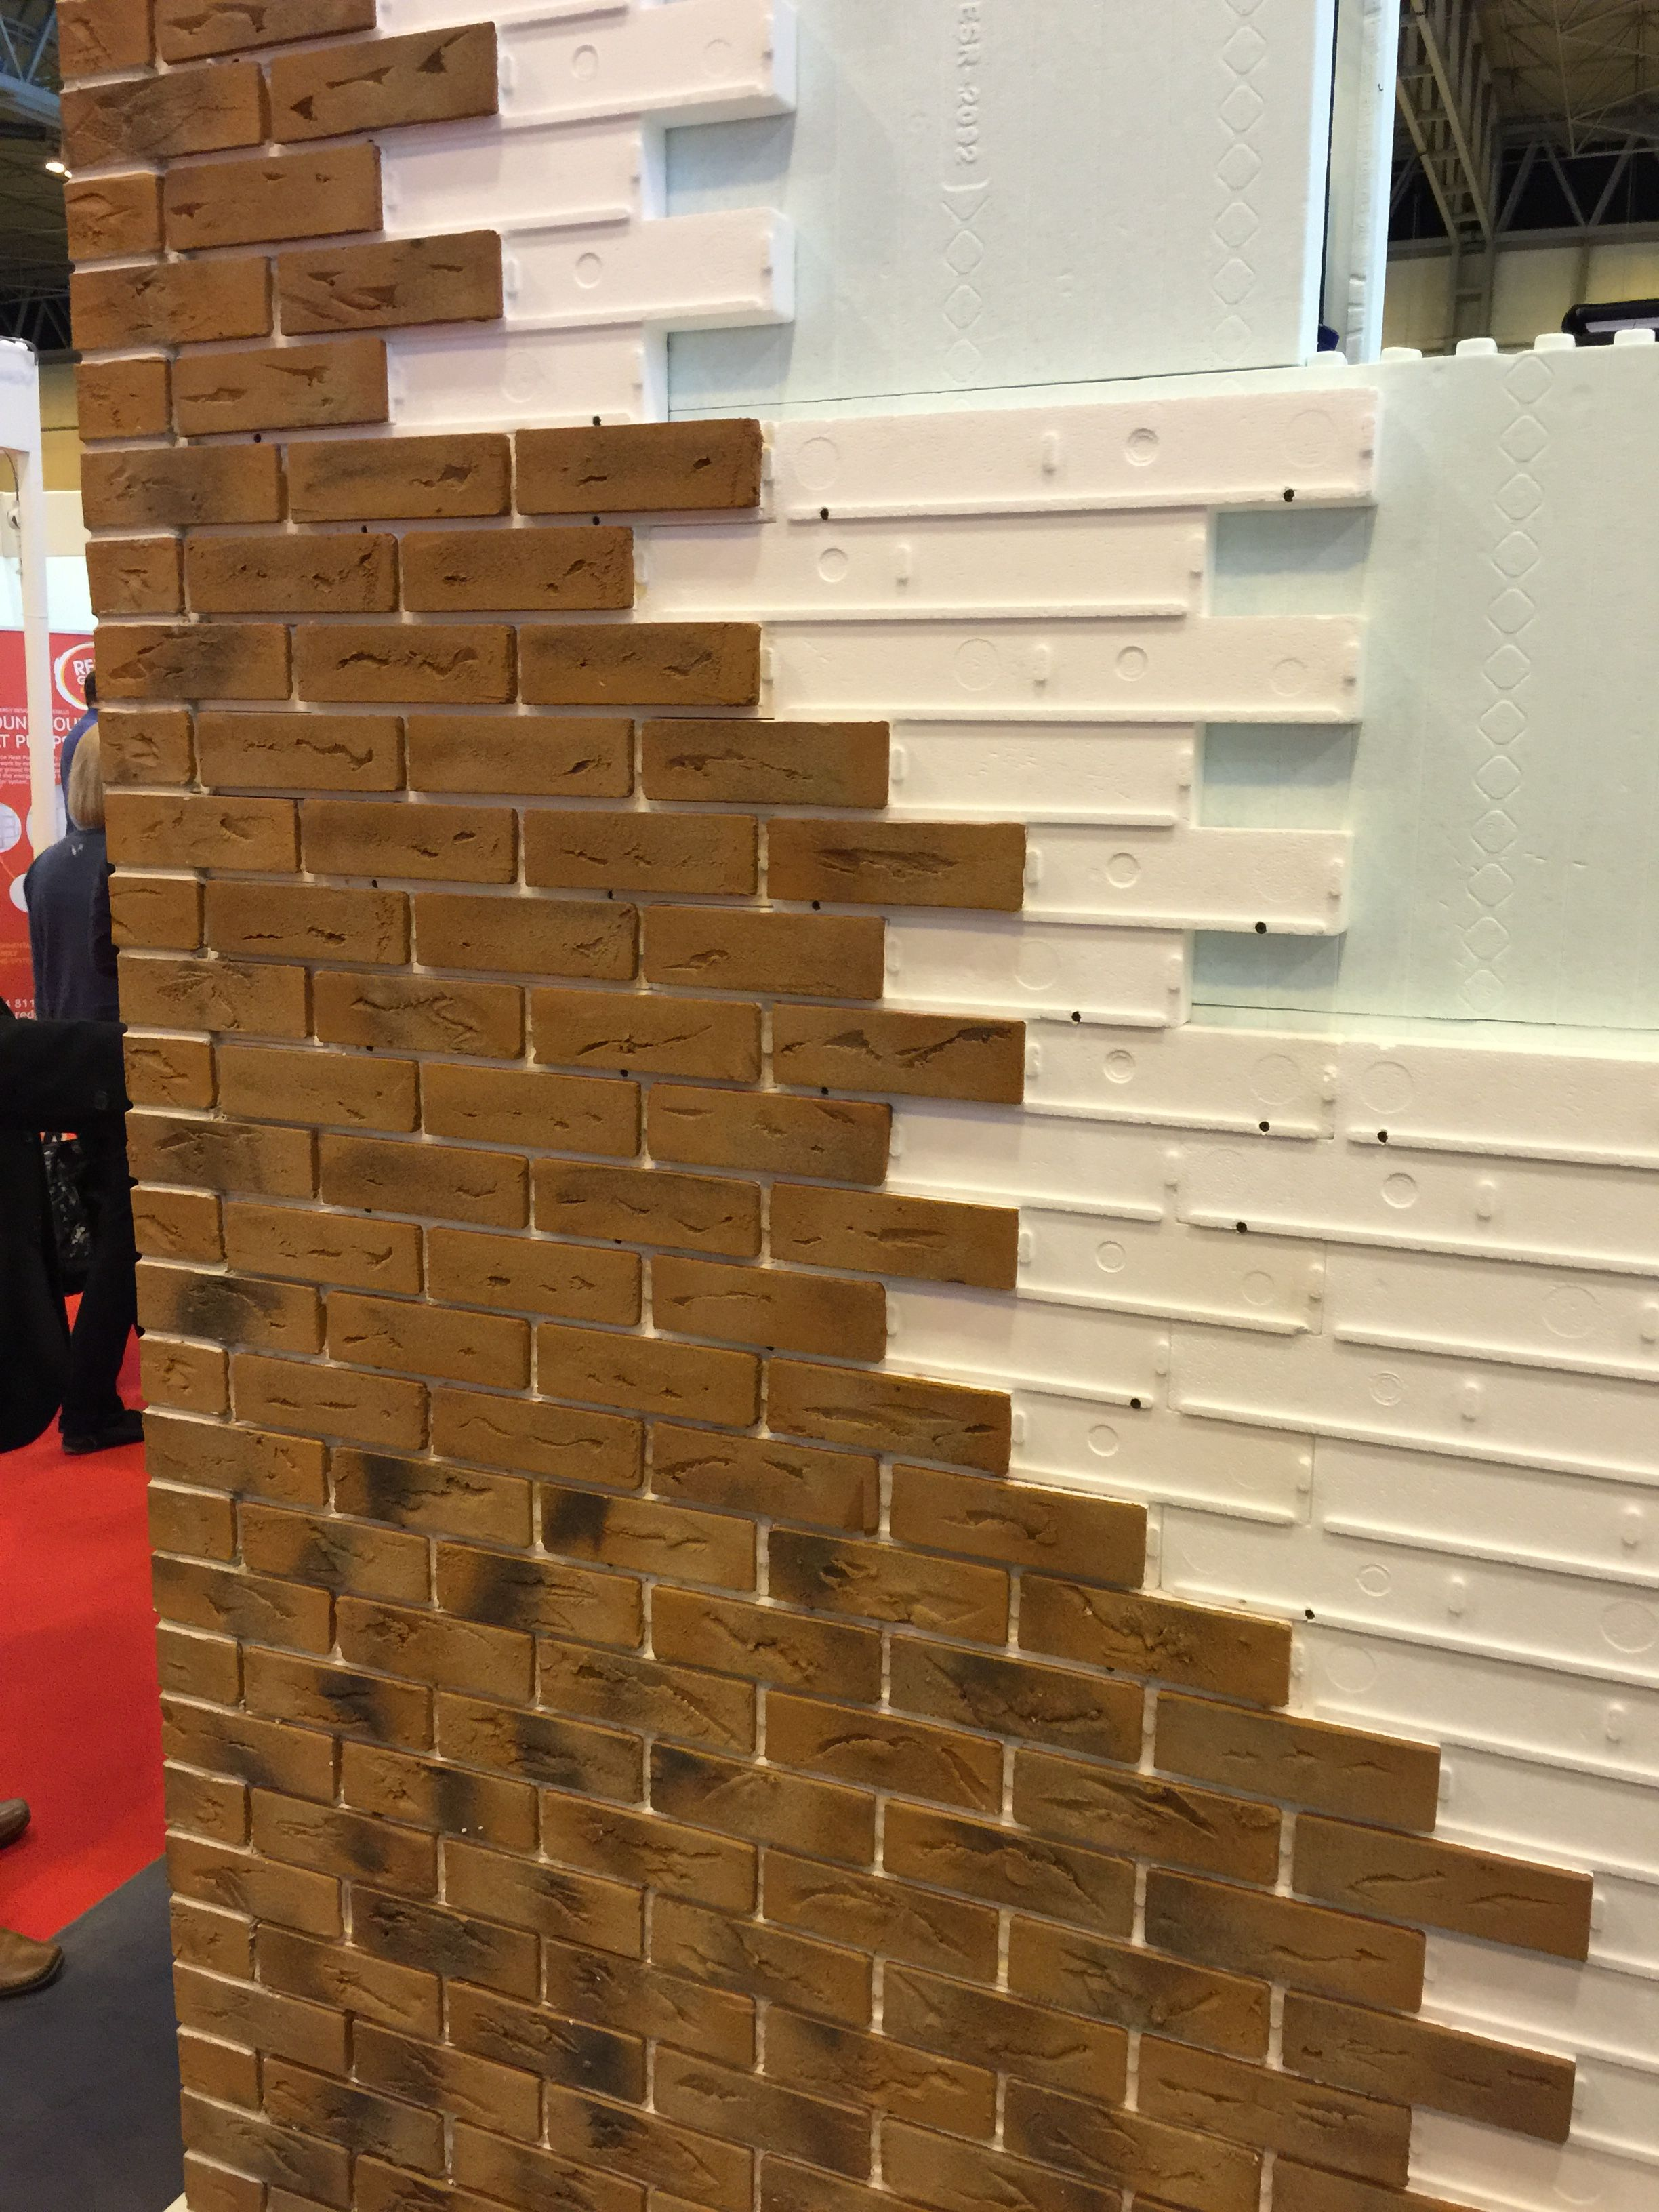 Brick Slip Cladding Either External Or With An Internal Feature Wall Diy Brick Wall Brick Wall Brick Cladding